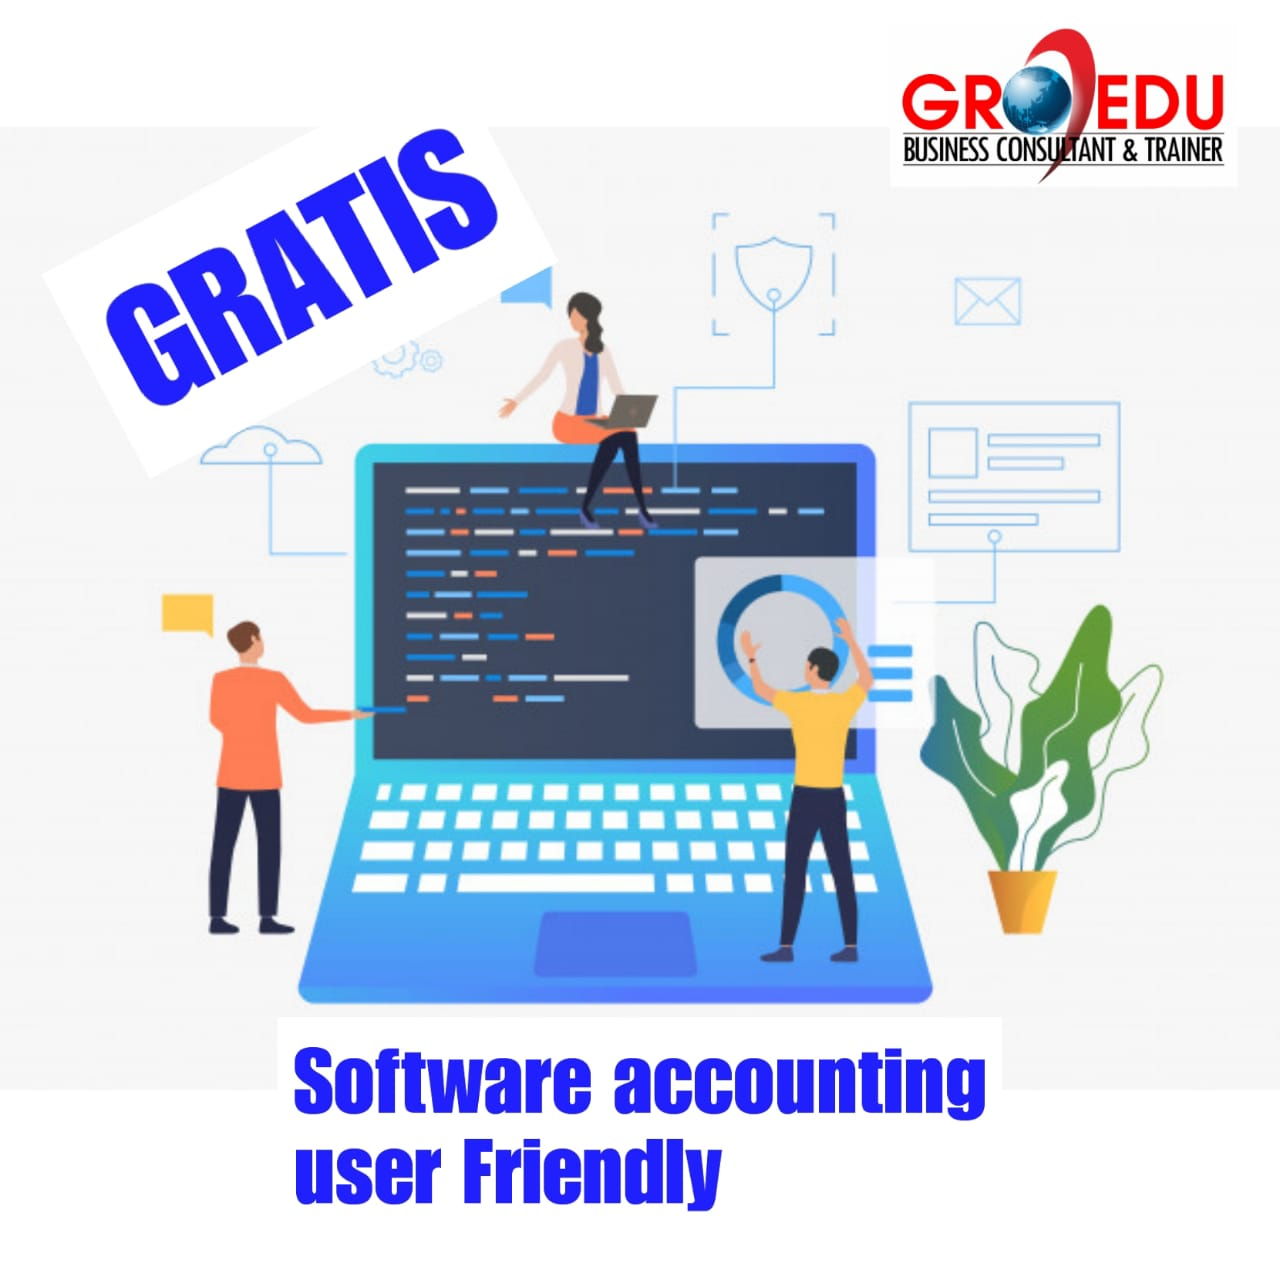 Brosur software accounting